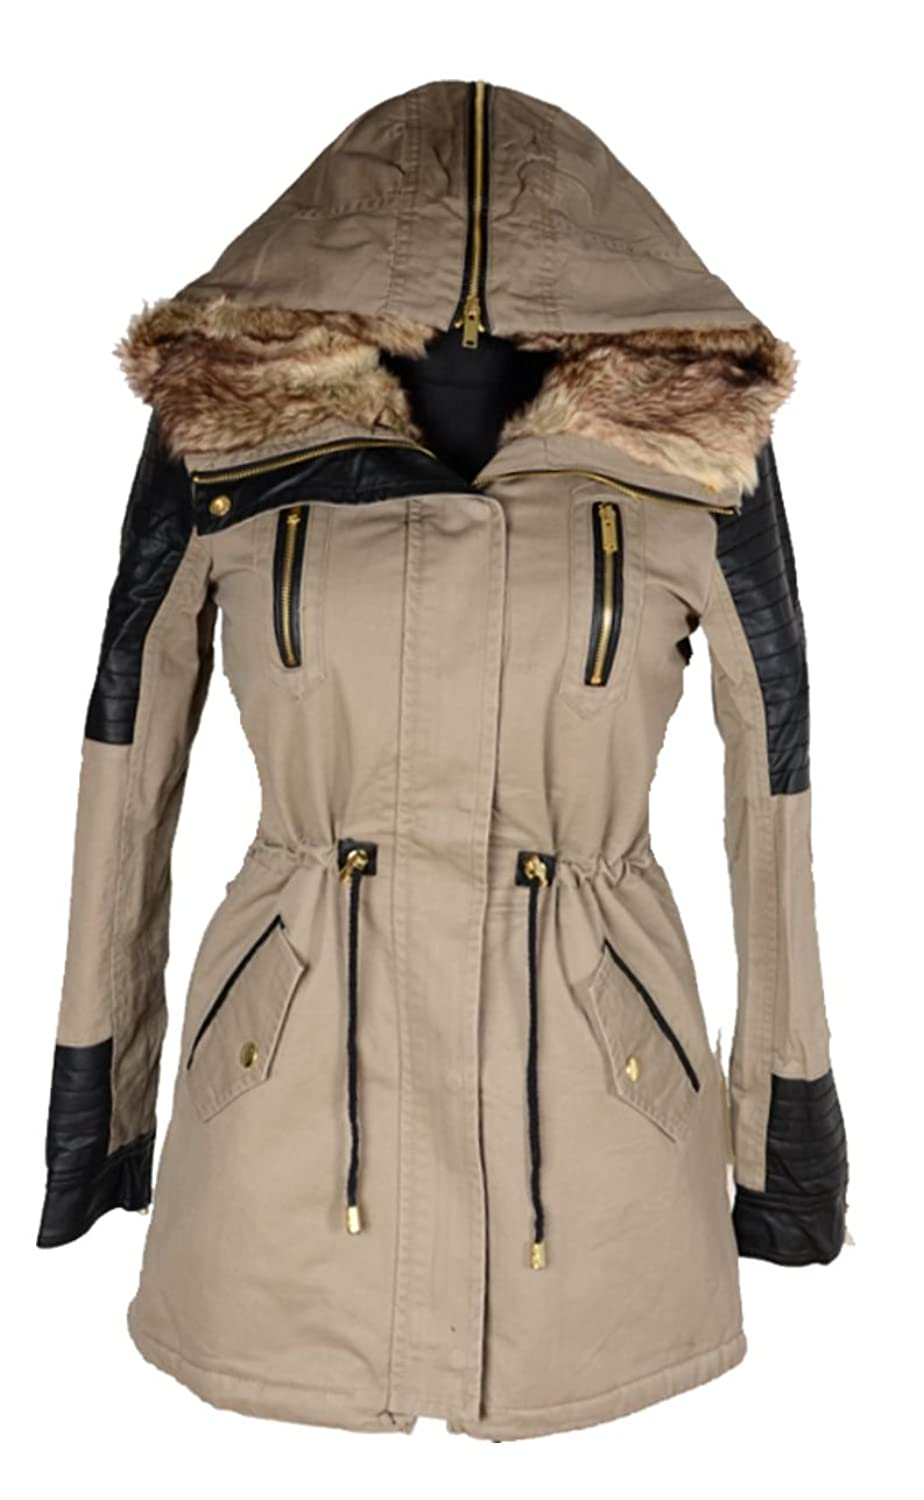 Damen Winterjacke Windbreaker warm mit FELL gefüttert Winter Kapuze Parka Jacke kurz Mantel 36 38 40 42 44 46 S M L XL Trench Coat Beige Anorak Leder